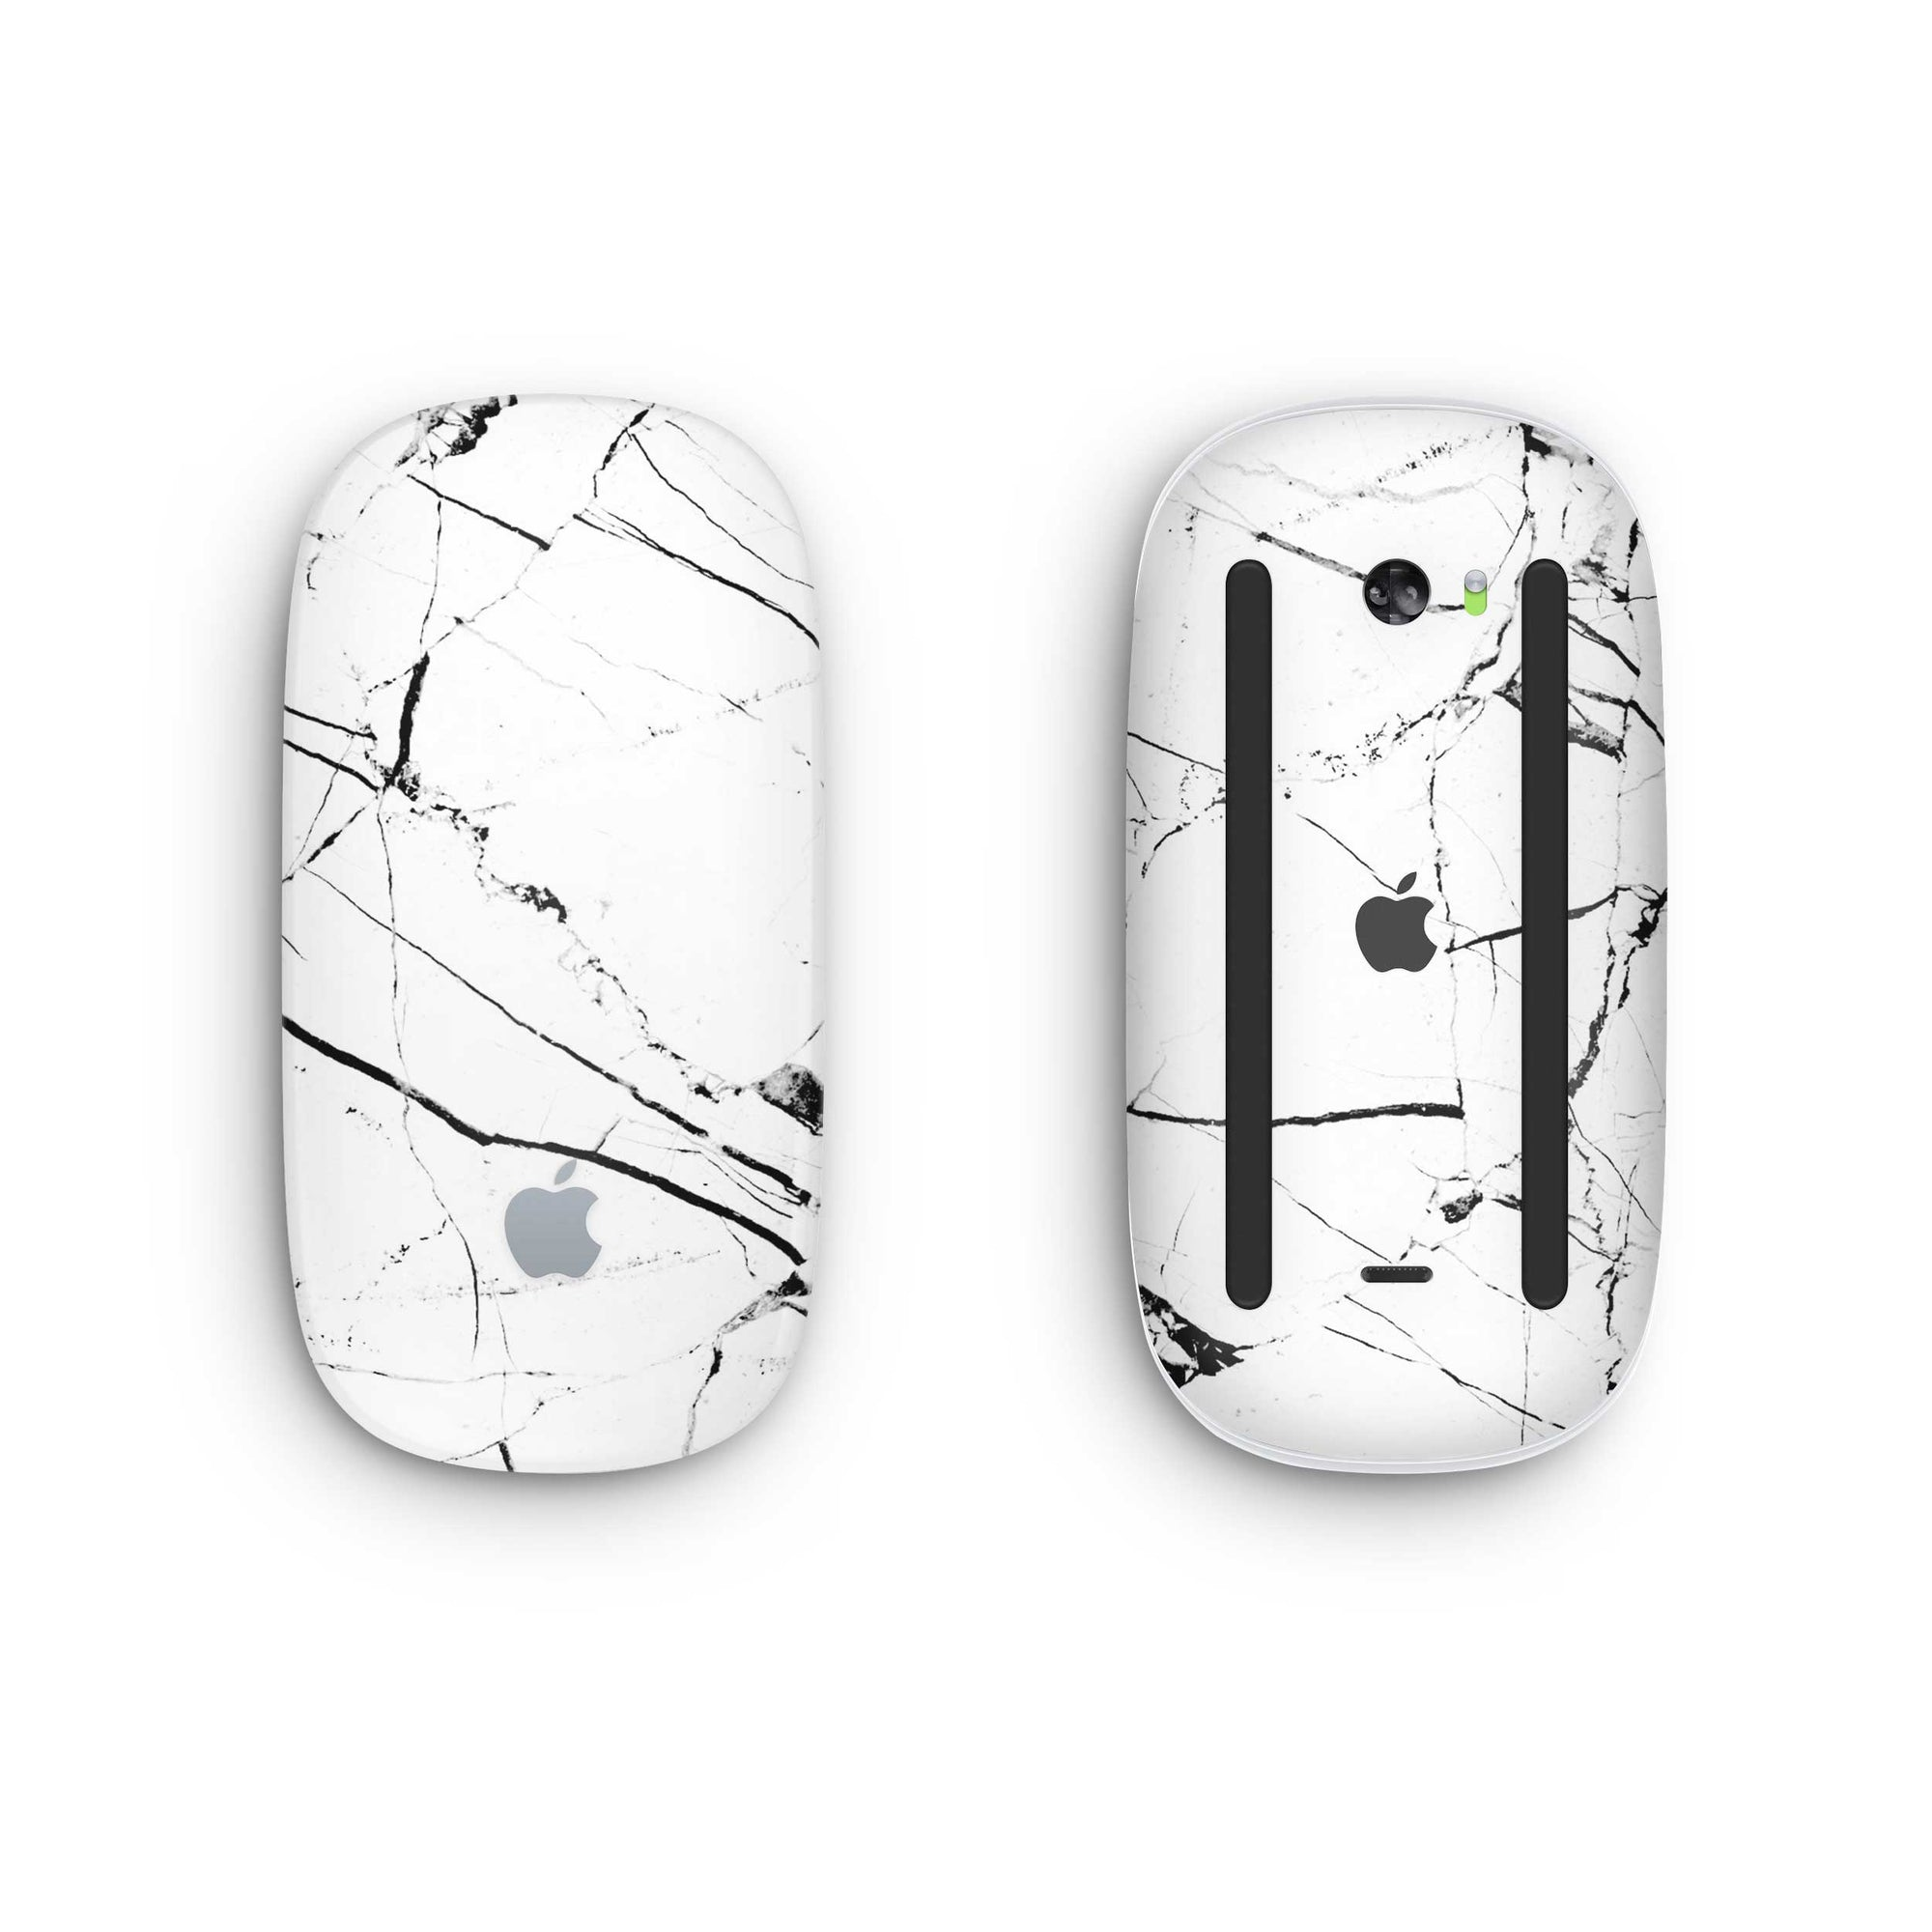 White Hyper Marble Magic Mouse 2 Skin